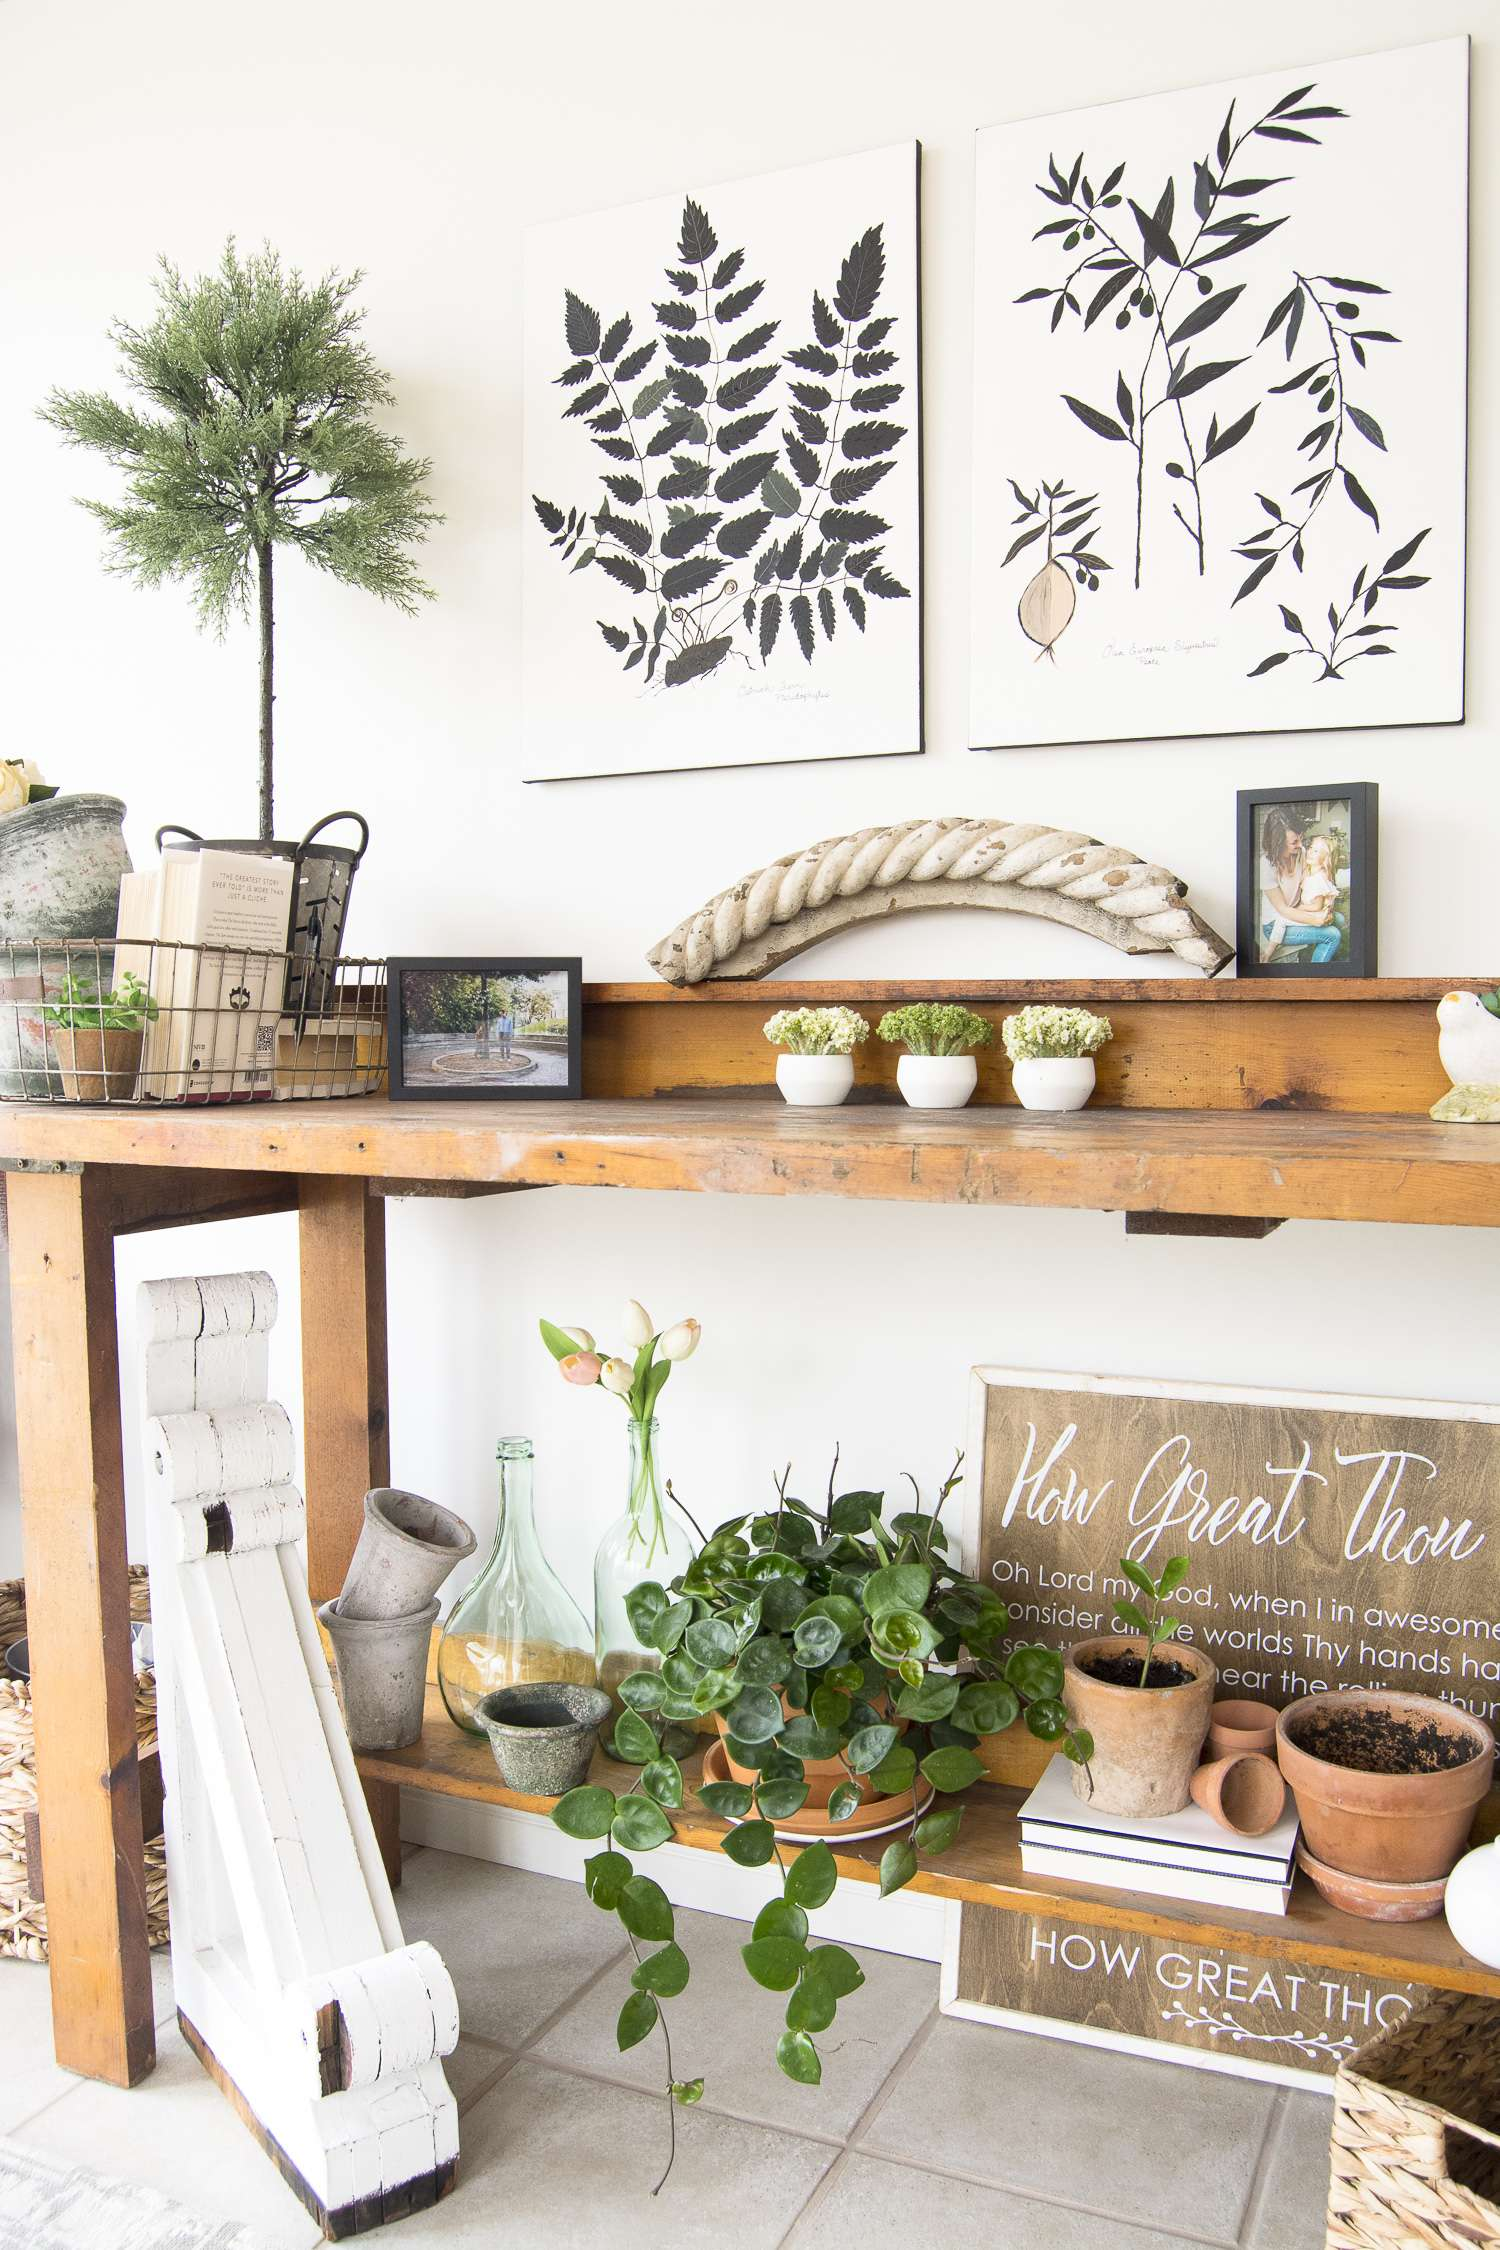 Have you ever needed to carve an office into another space? Today I'm sharing how I made a sunroom office into a dual purpose paradise. A little sun and nature mixed with a little work and modern convenience. Head to the blog for all the details www.graceinmyspace.com.